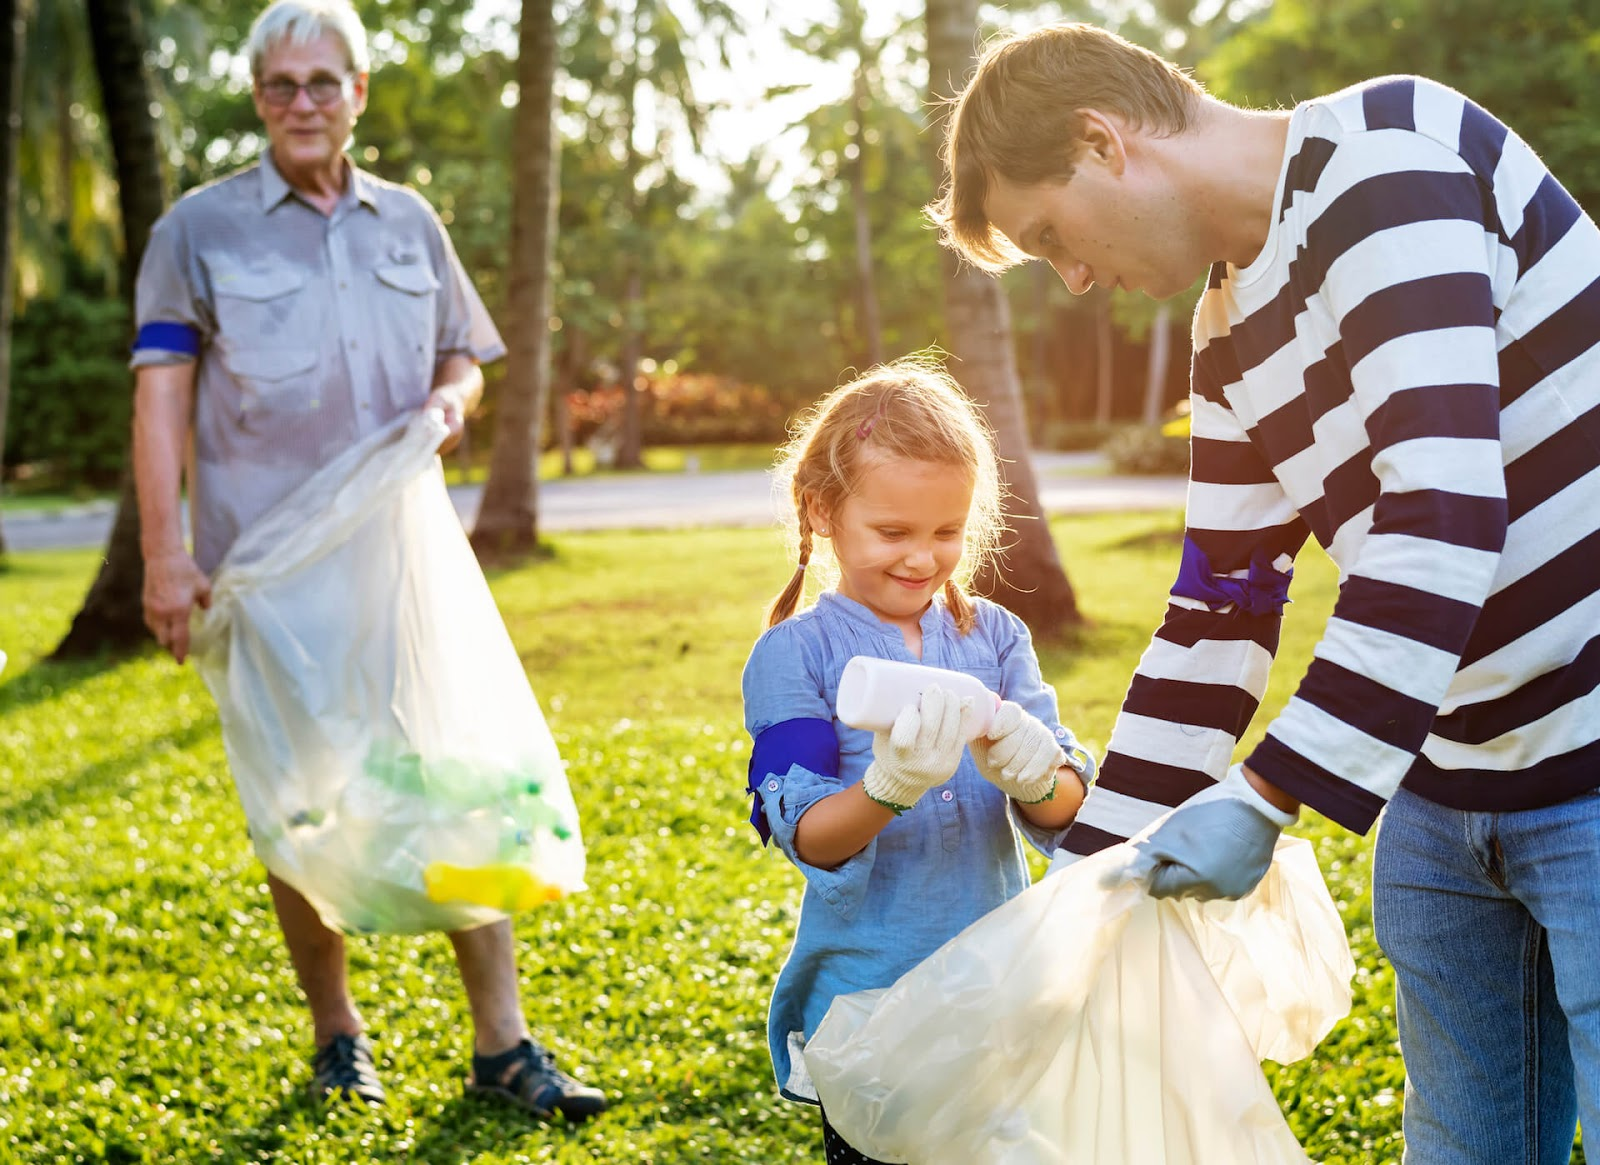 Man helping his daughter pick up trash in the park